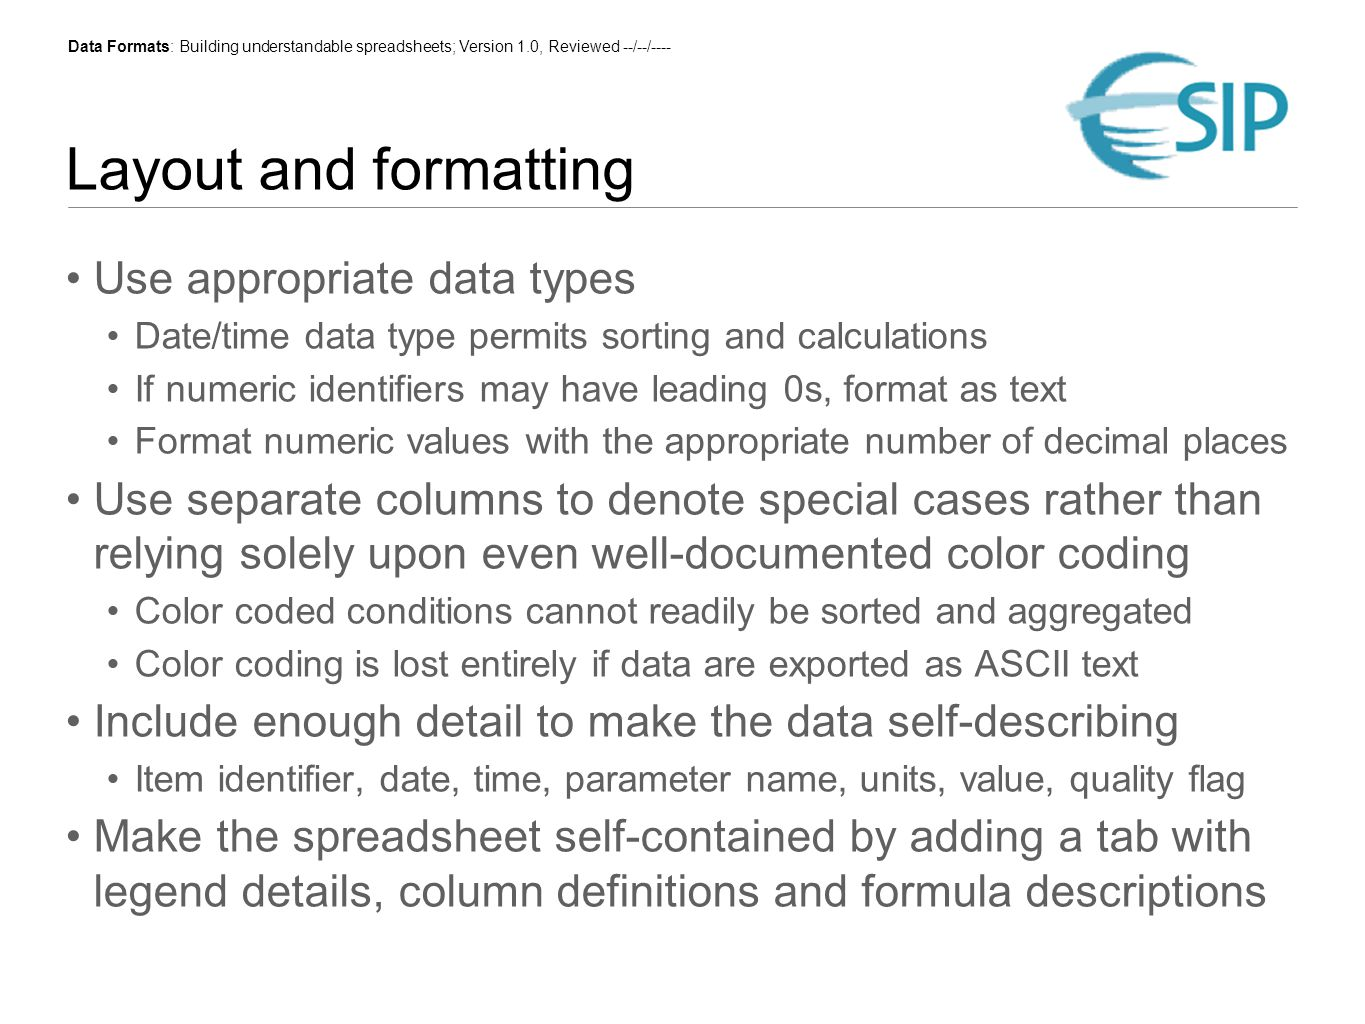 Data Formats: Building understandable spreadsheets; Version 1.0, Reviewed --/--/---- Data handling and formulae Don't combine multiple data layouts in a single sheet If sheets have common content, identical layouts and headings increase clarity and simplify linking for analysis Simplify updates by separating data and analyses If data are propagated across sheets or manually manipulated, refreshing data can be a daunting and error-prone task Freeze heading rows and columns to provide context as you work deep in the sheet Placing totals, counts and other summary statistics above the column headers ensures they are always visible Headers, footers and repeating headings improve printouts